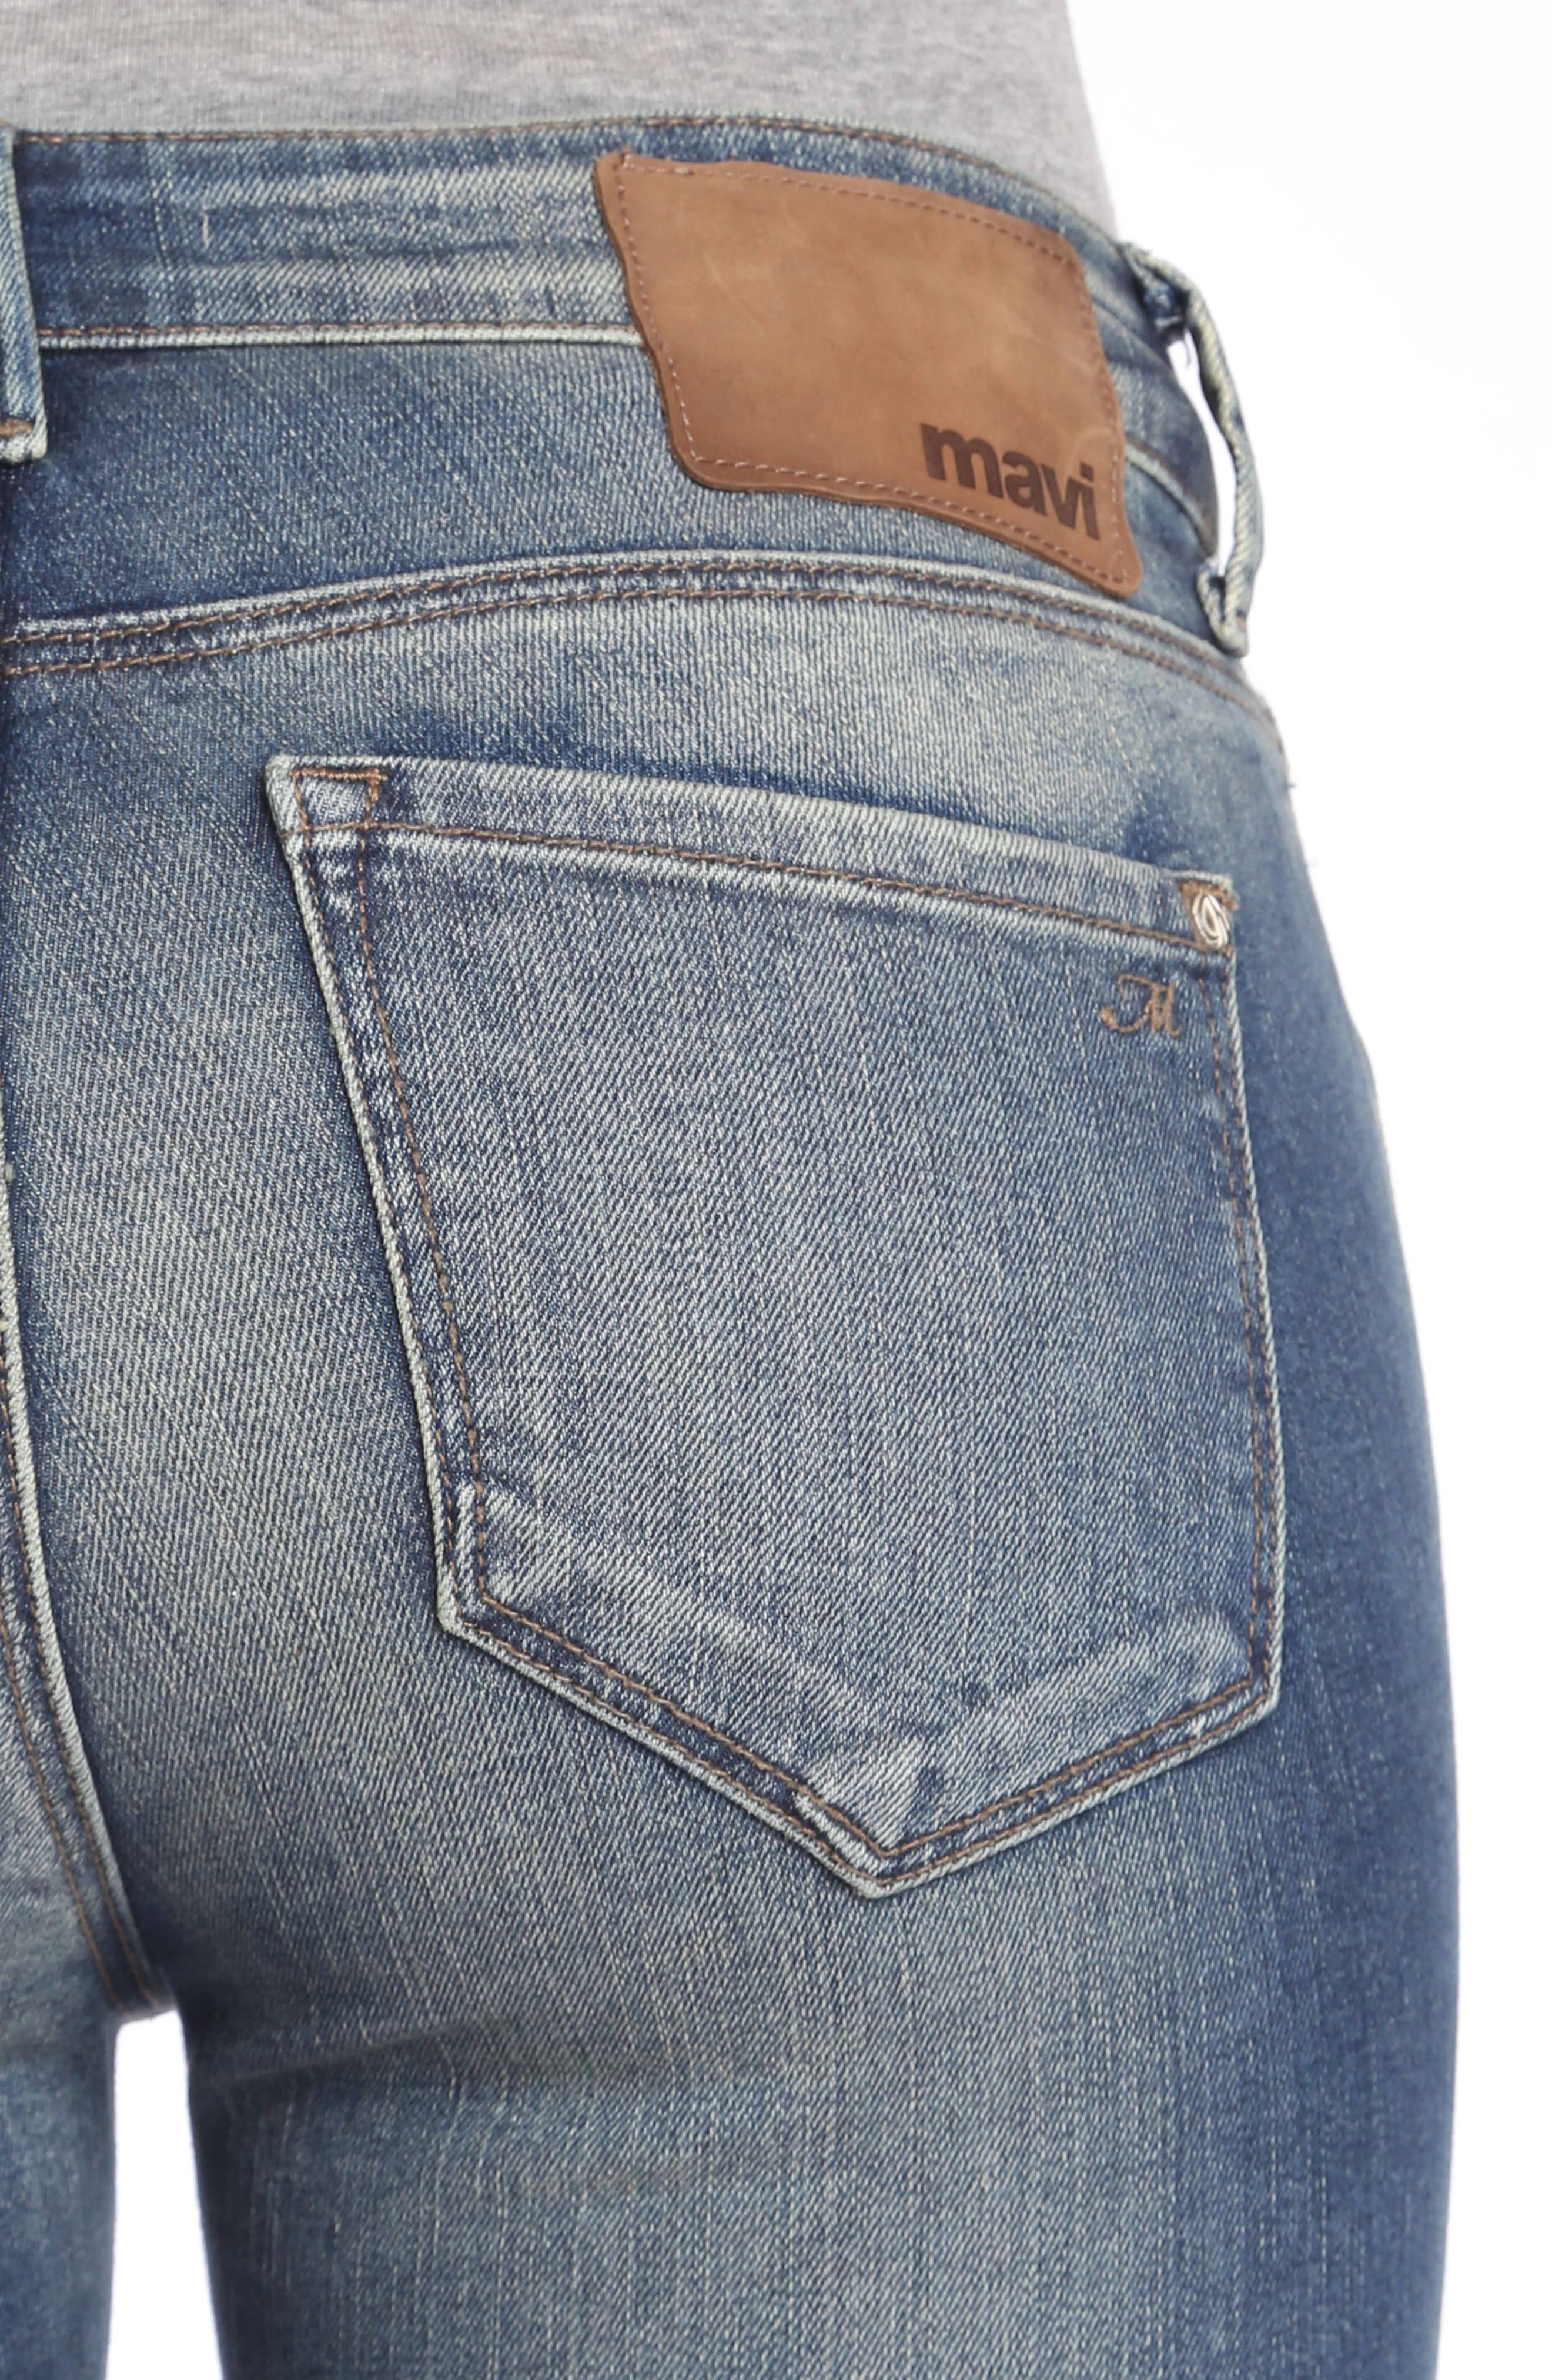 Adriana Stretch Skinny Jeans,                             Alternate thumbnail 4, color,                             Mid Shaded Glam Vintage